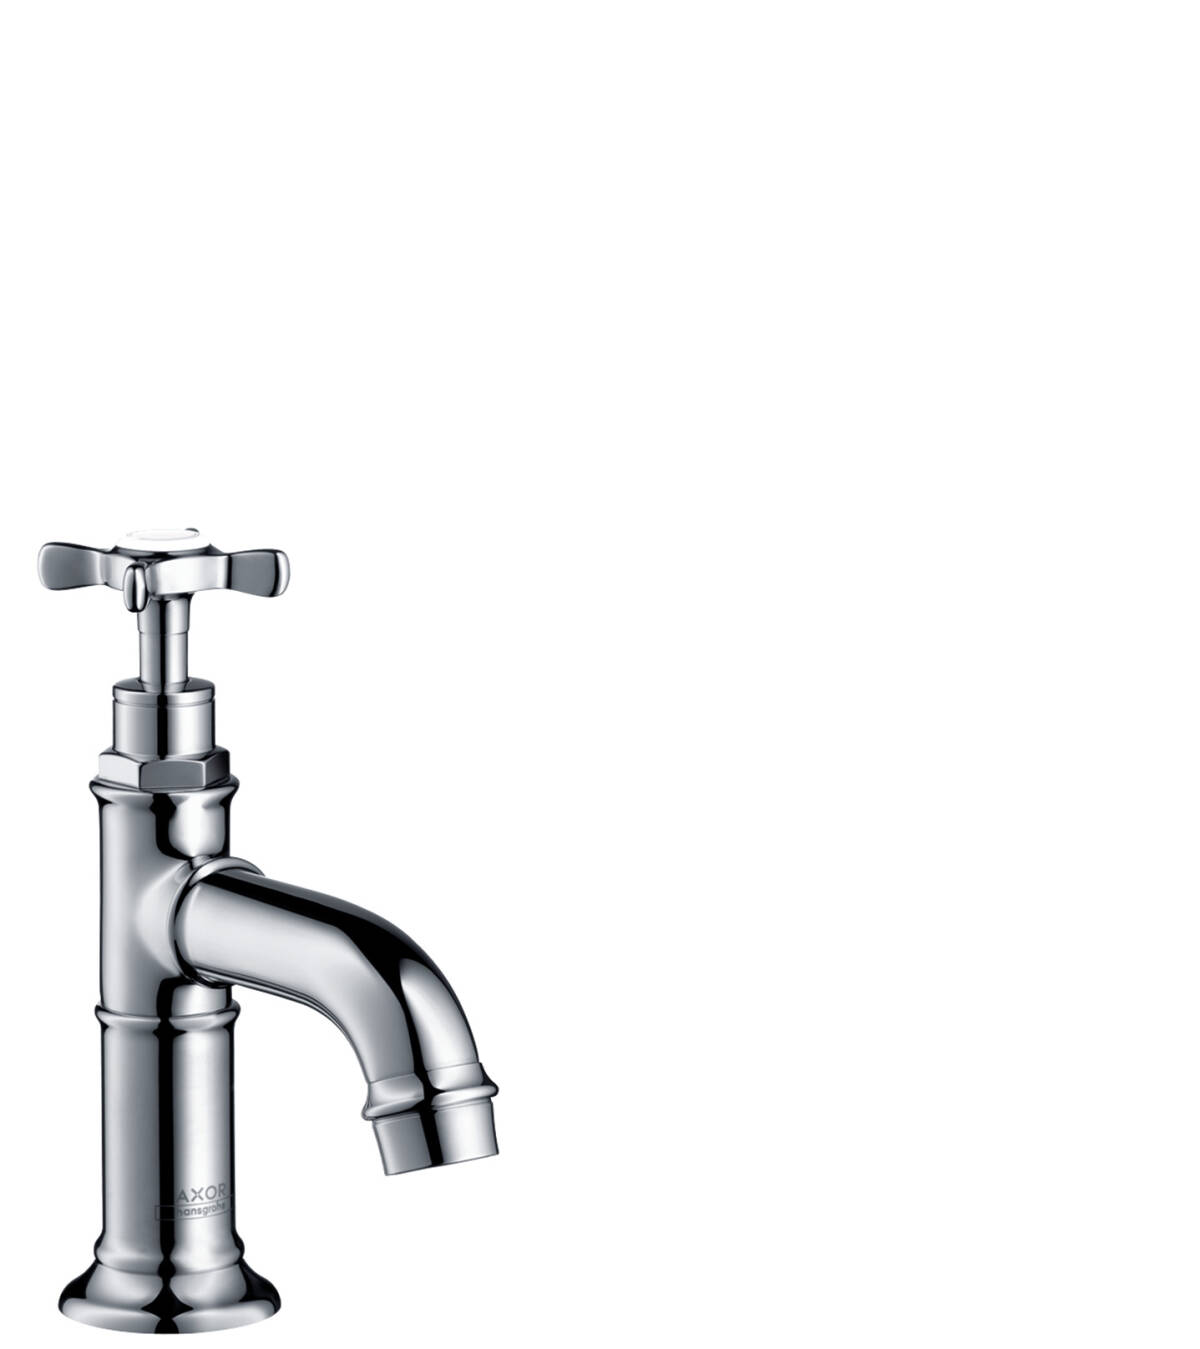 Pillar tap without waste set, Chrome, 16530000